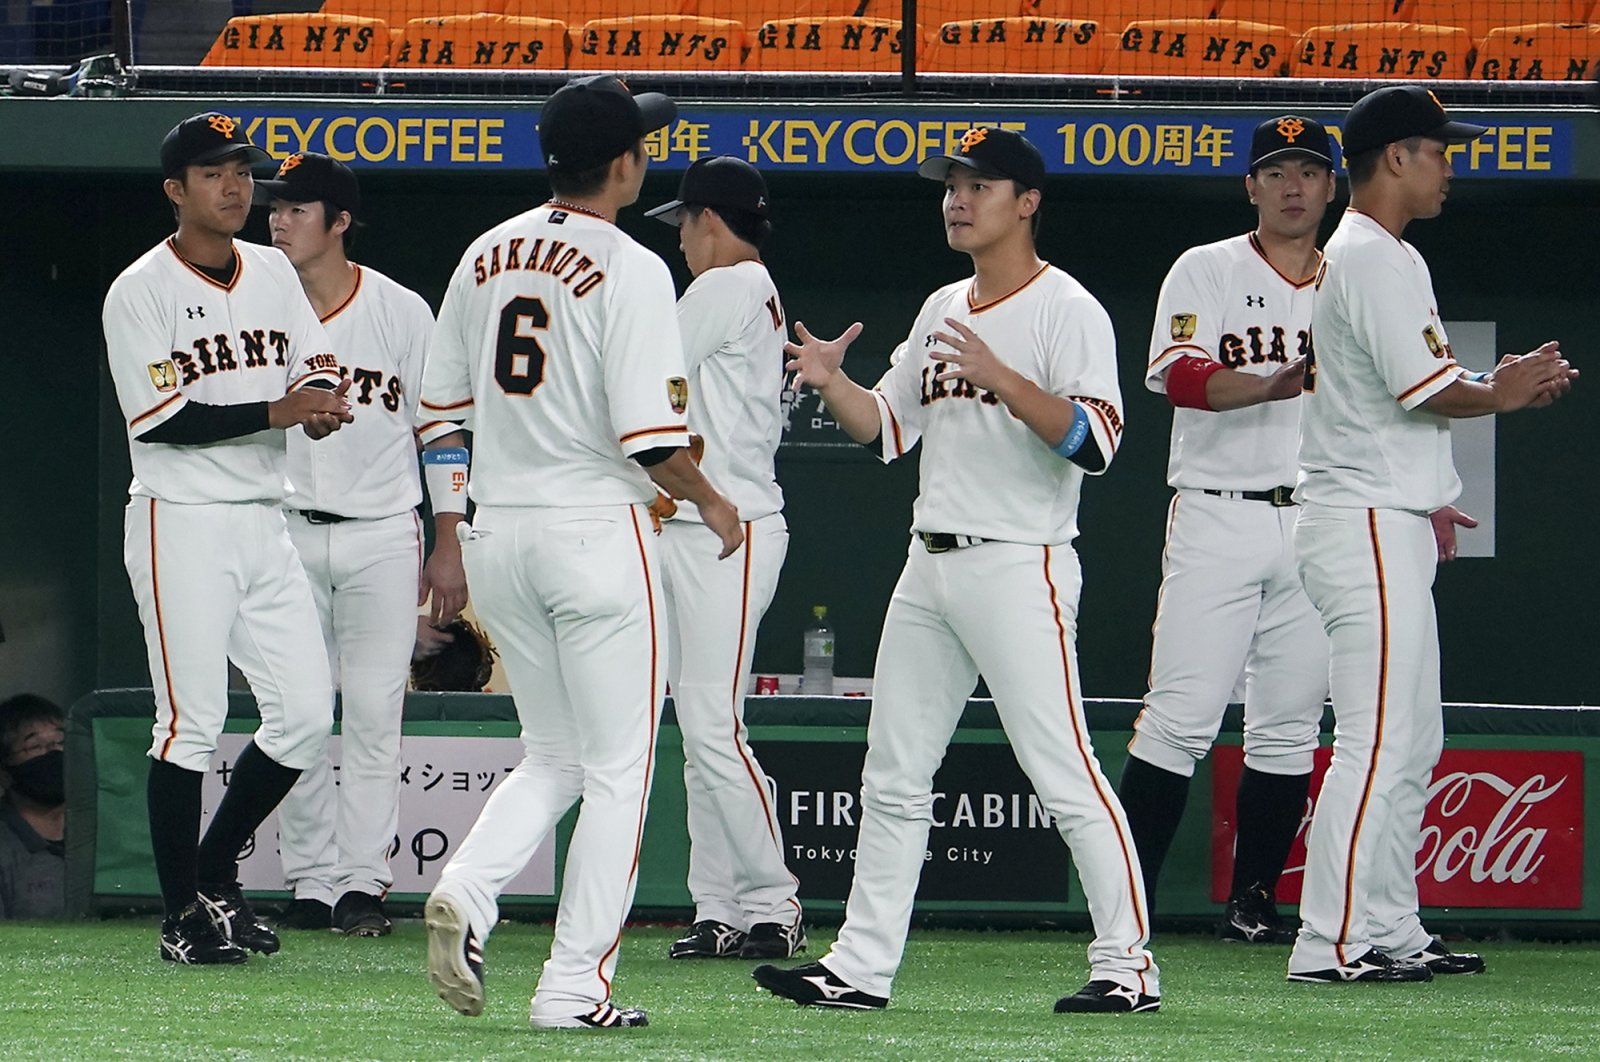 Yomiuri Giants players gather between play in an opening baseball game against the Hanshin Tigers, Tokyo, Japan, June 19, 2020. (AP Photo)